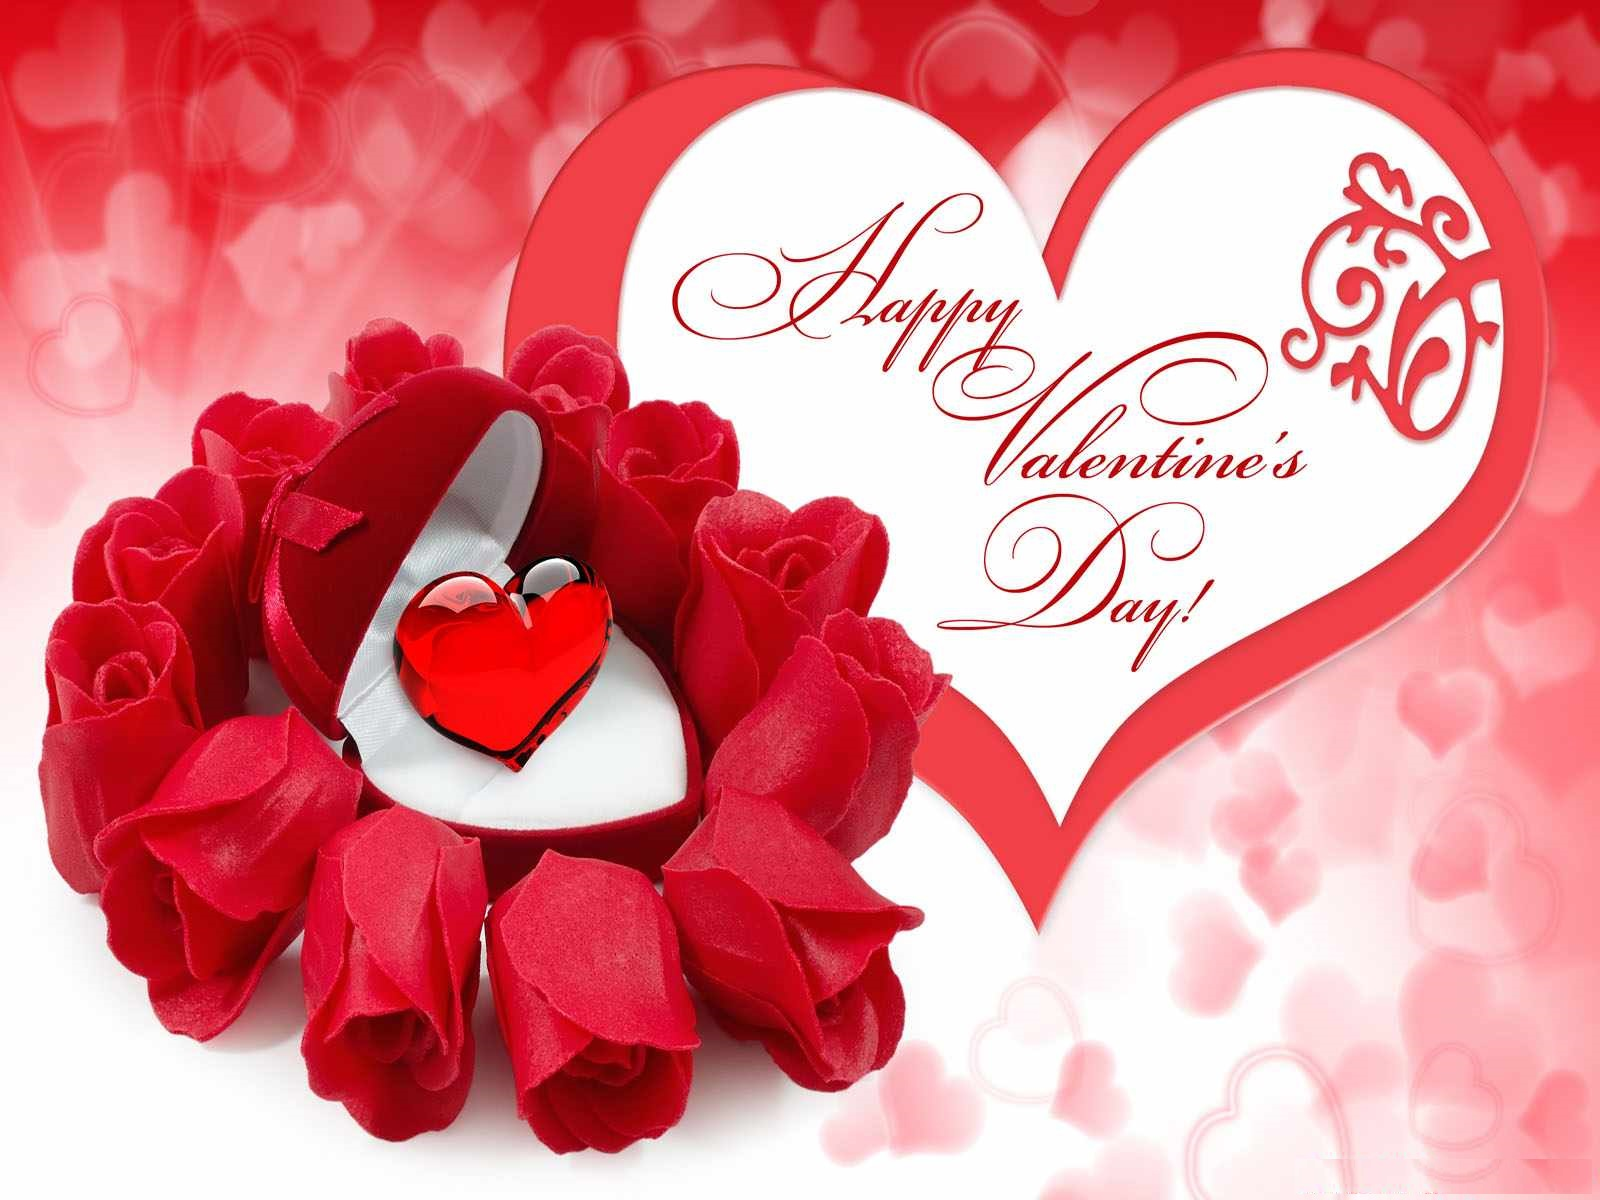 Happy Valentines Day Cards Wallpapers & pic